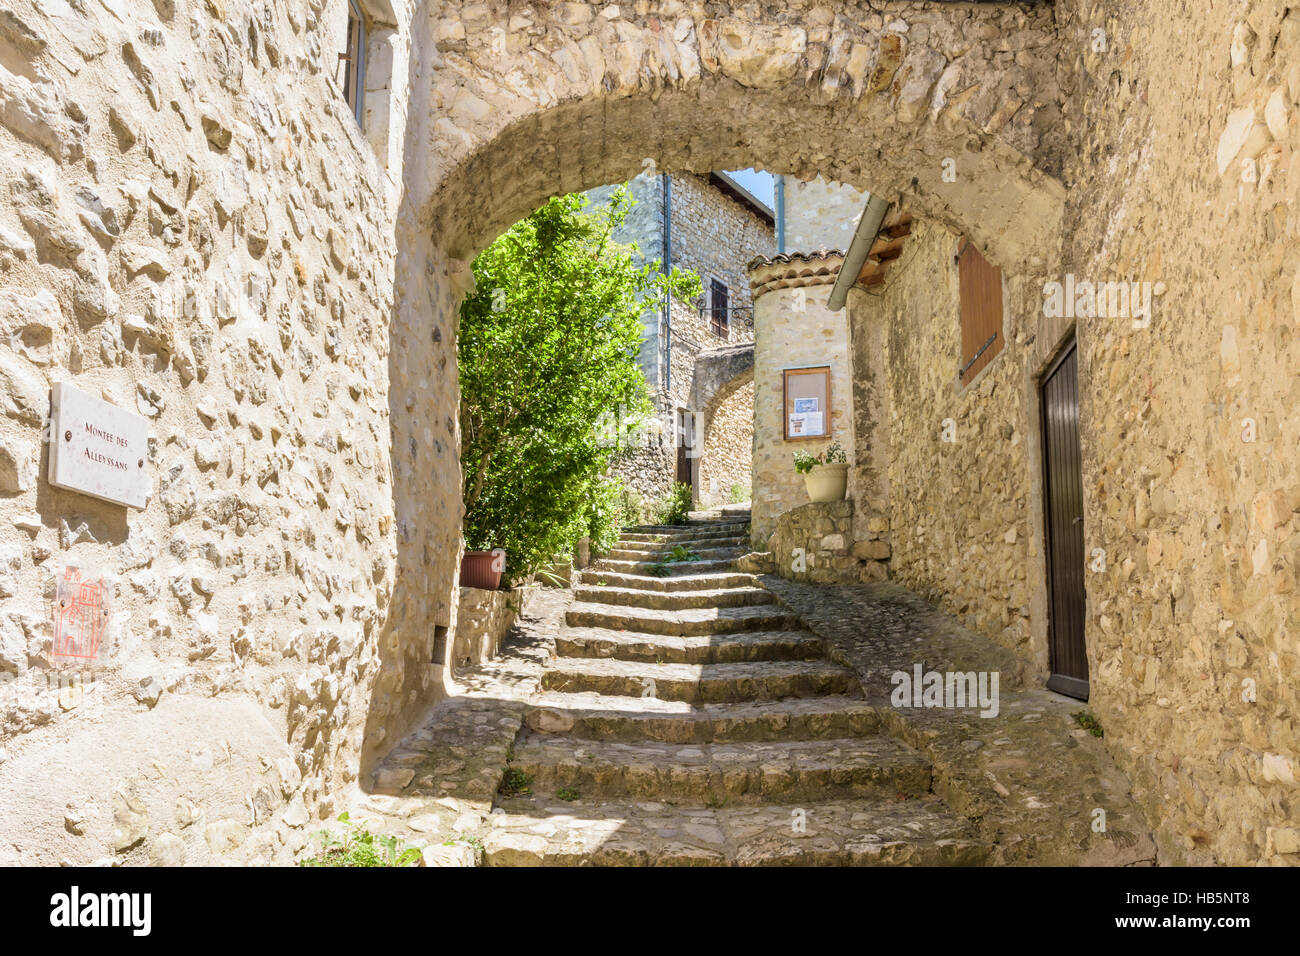 Reinforcing buttress arch in the medieval village of Mirmande, Drôme, France Stock Photo